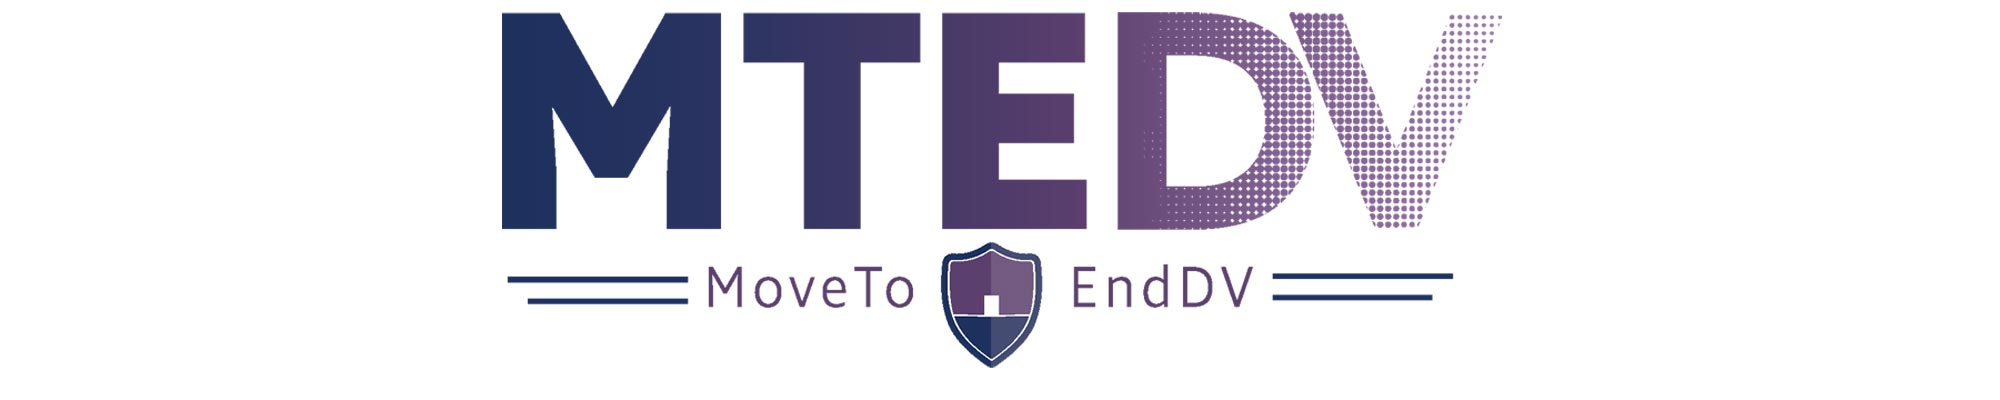 Move To End DV Logo